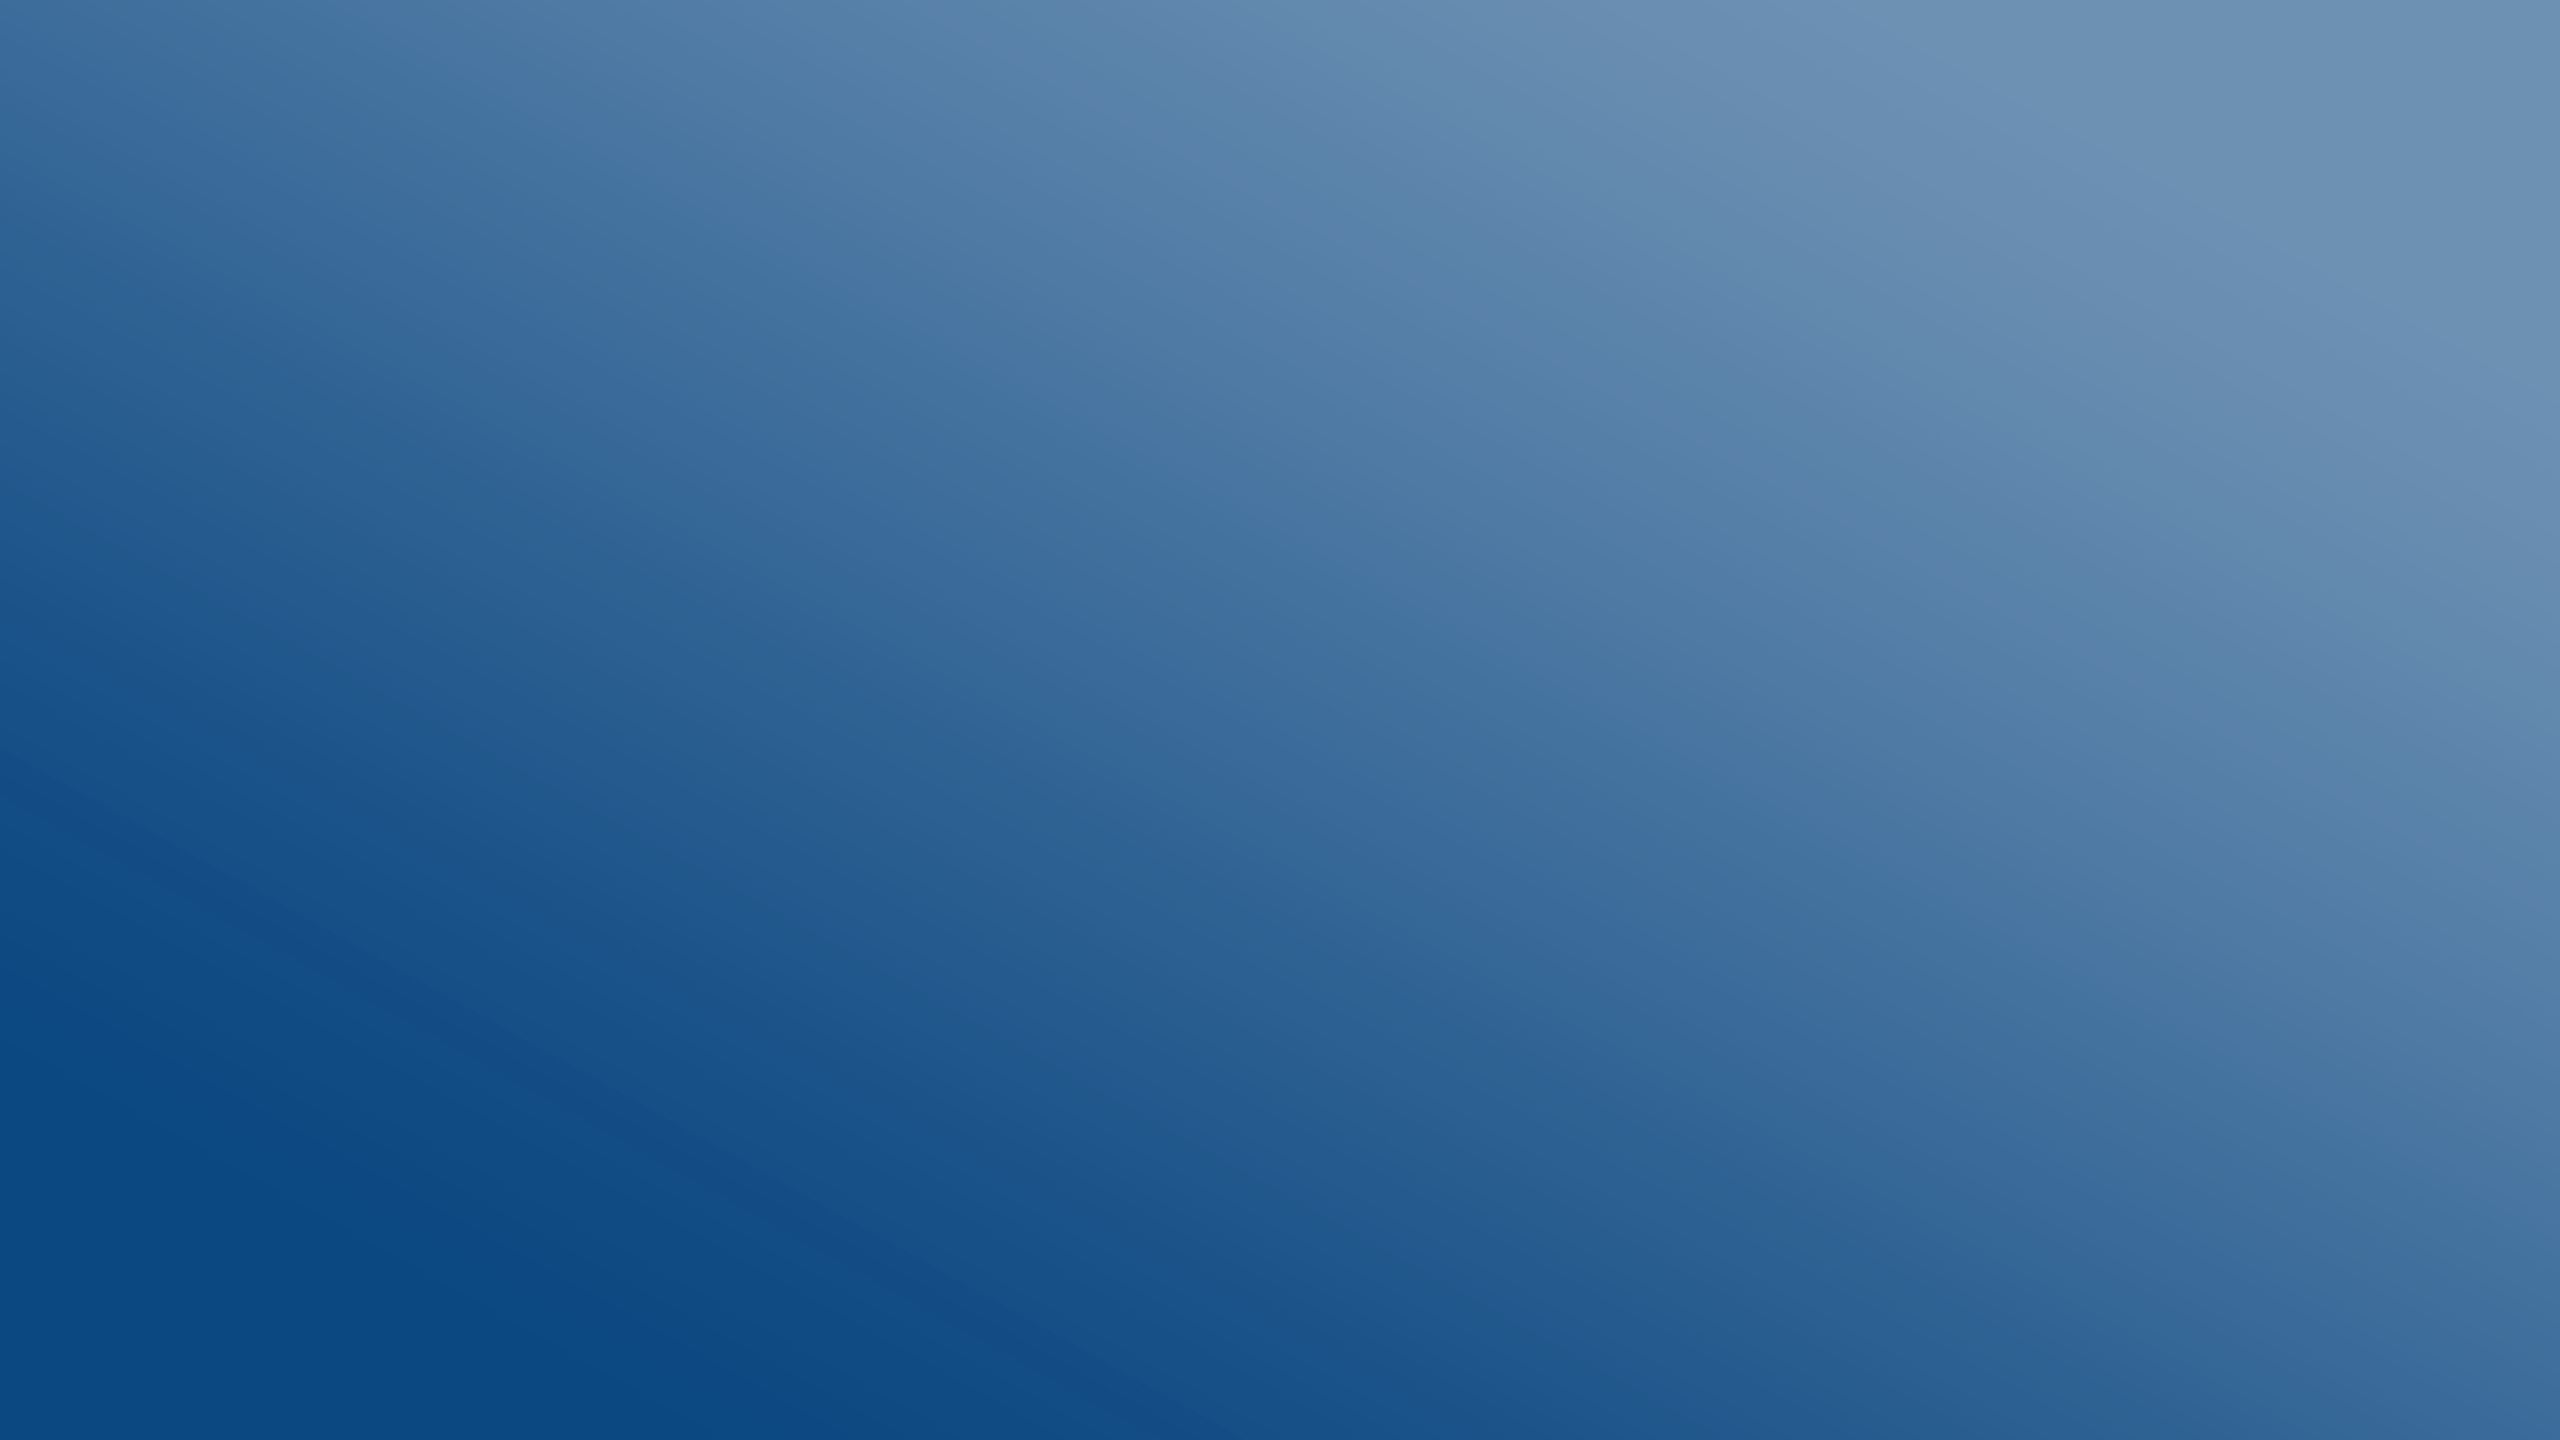 2560x1440 Download wallpaper 2560x1440 blue, backgrounds, solid, light ...